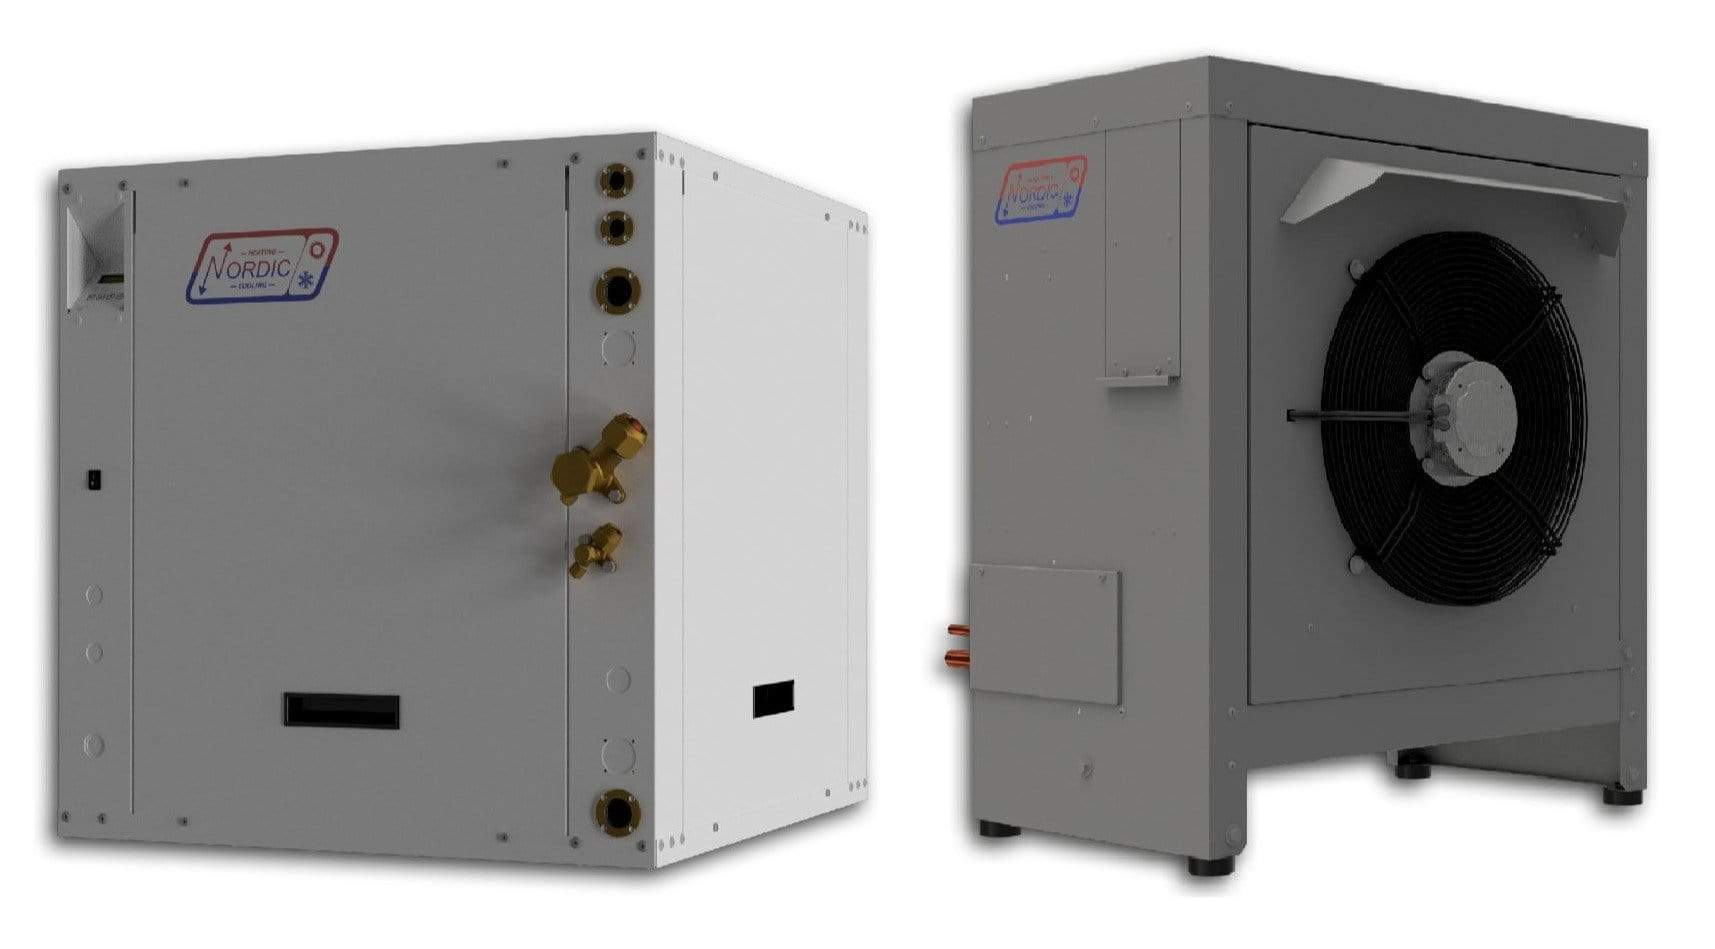 ATW55 Air to Water Heat Pump - Nordic ATW55 - Split Type - 4 Tons Nominal Cooling Capacity